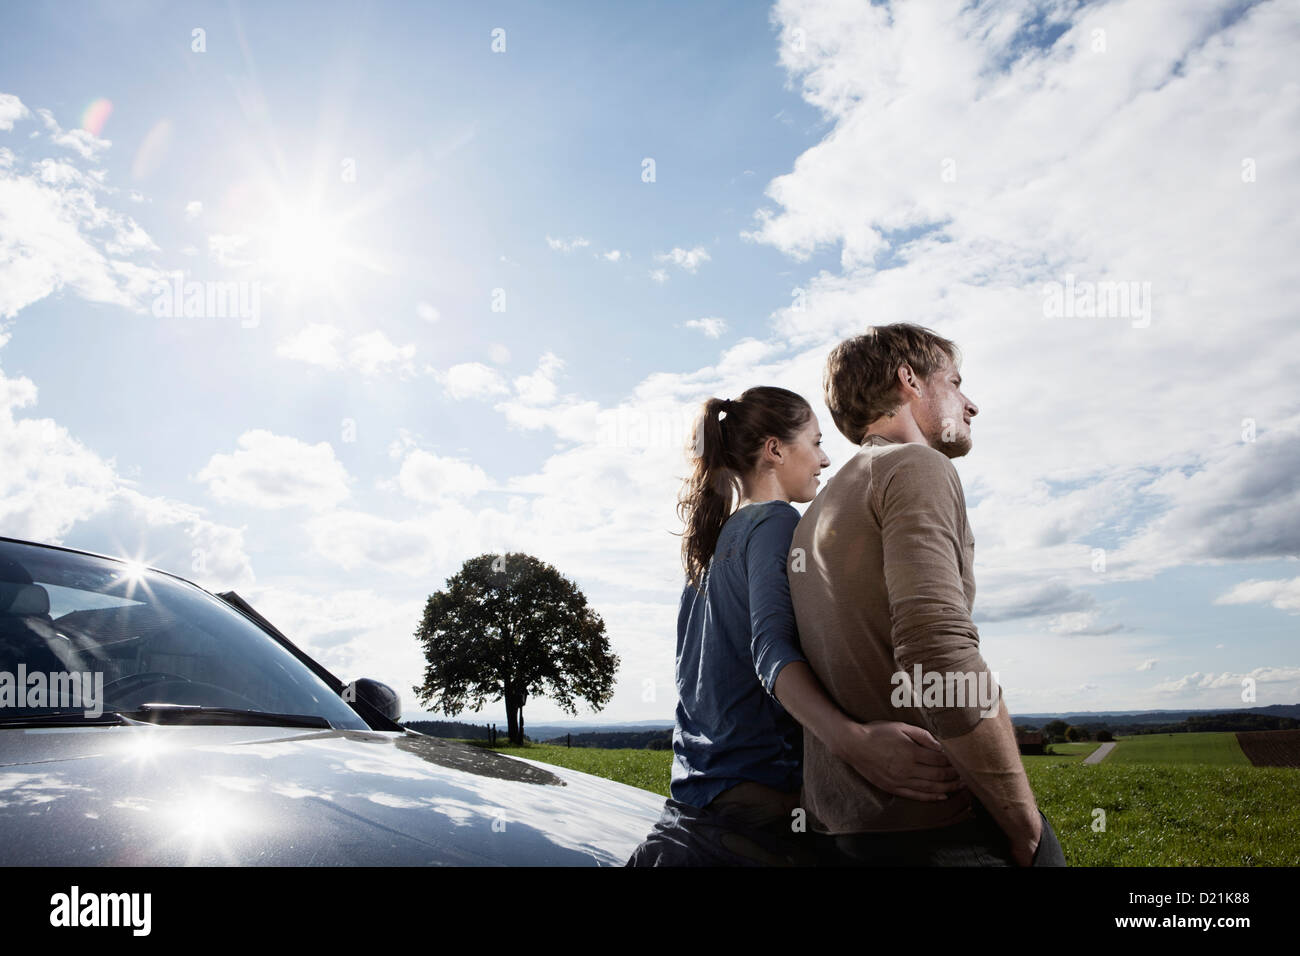 Germany, Bavaria, Couple standing by car - Stock Image